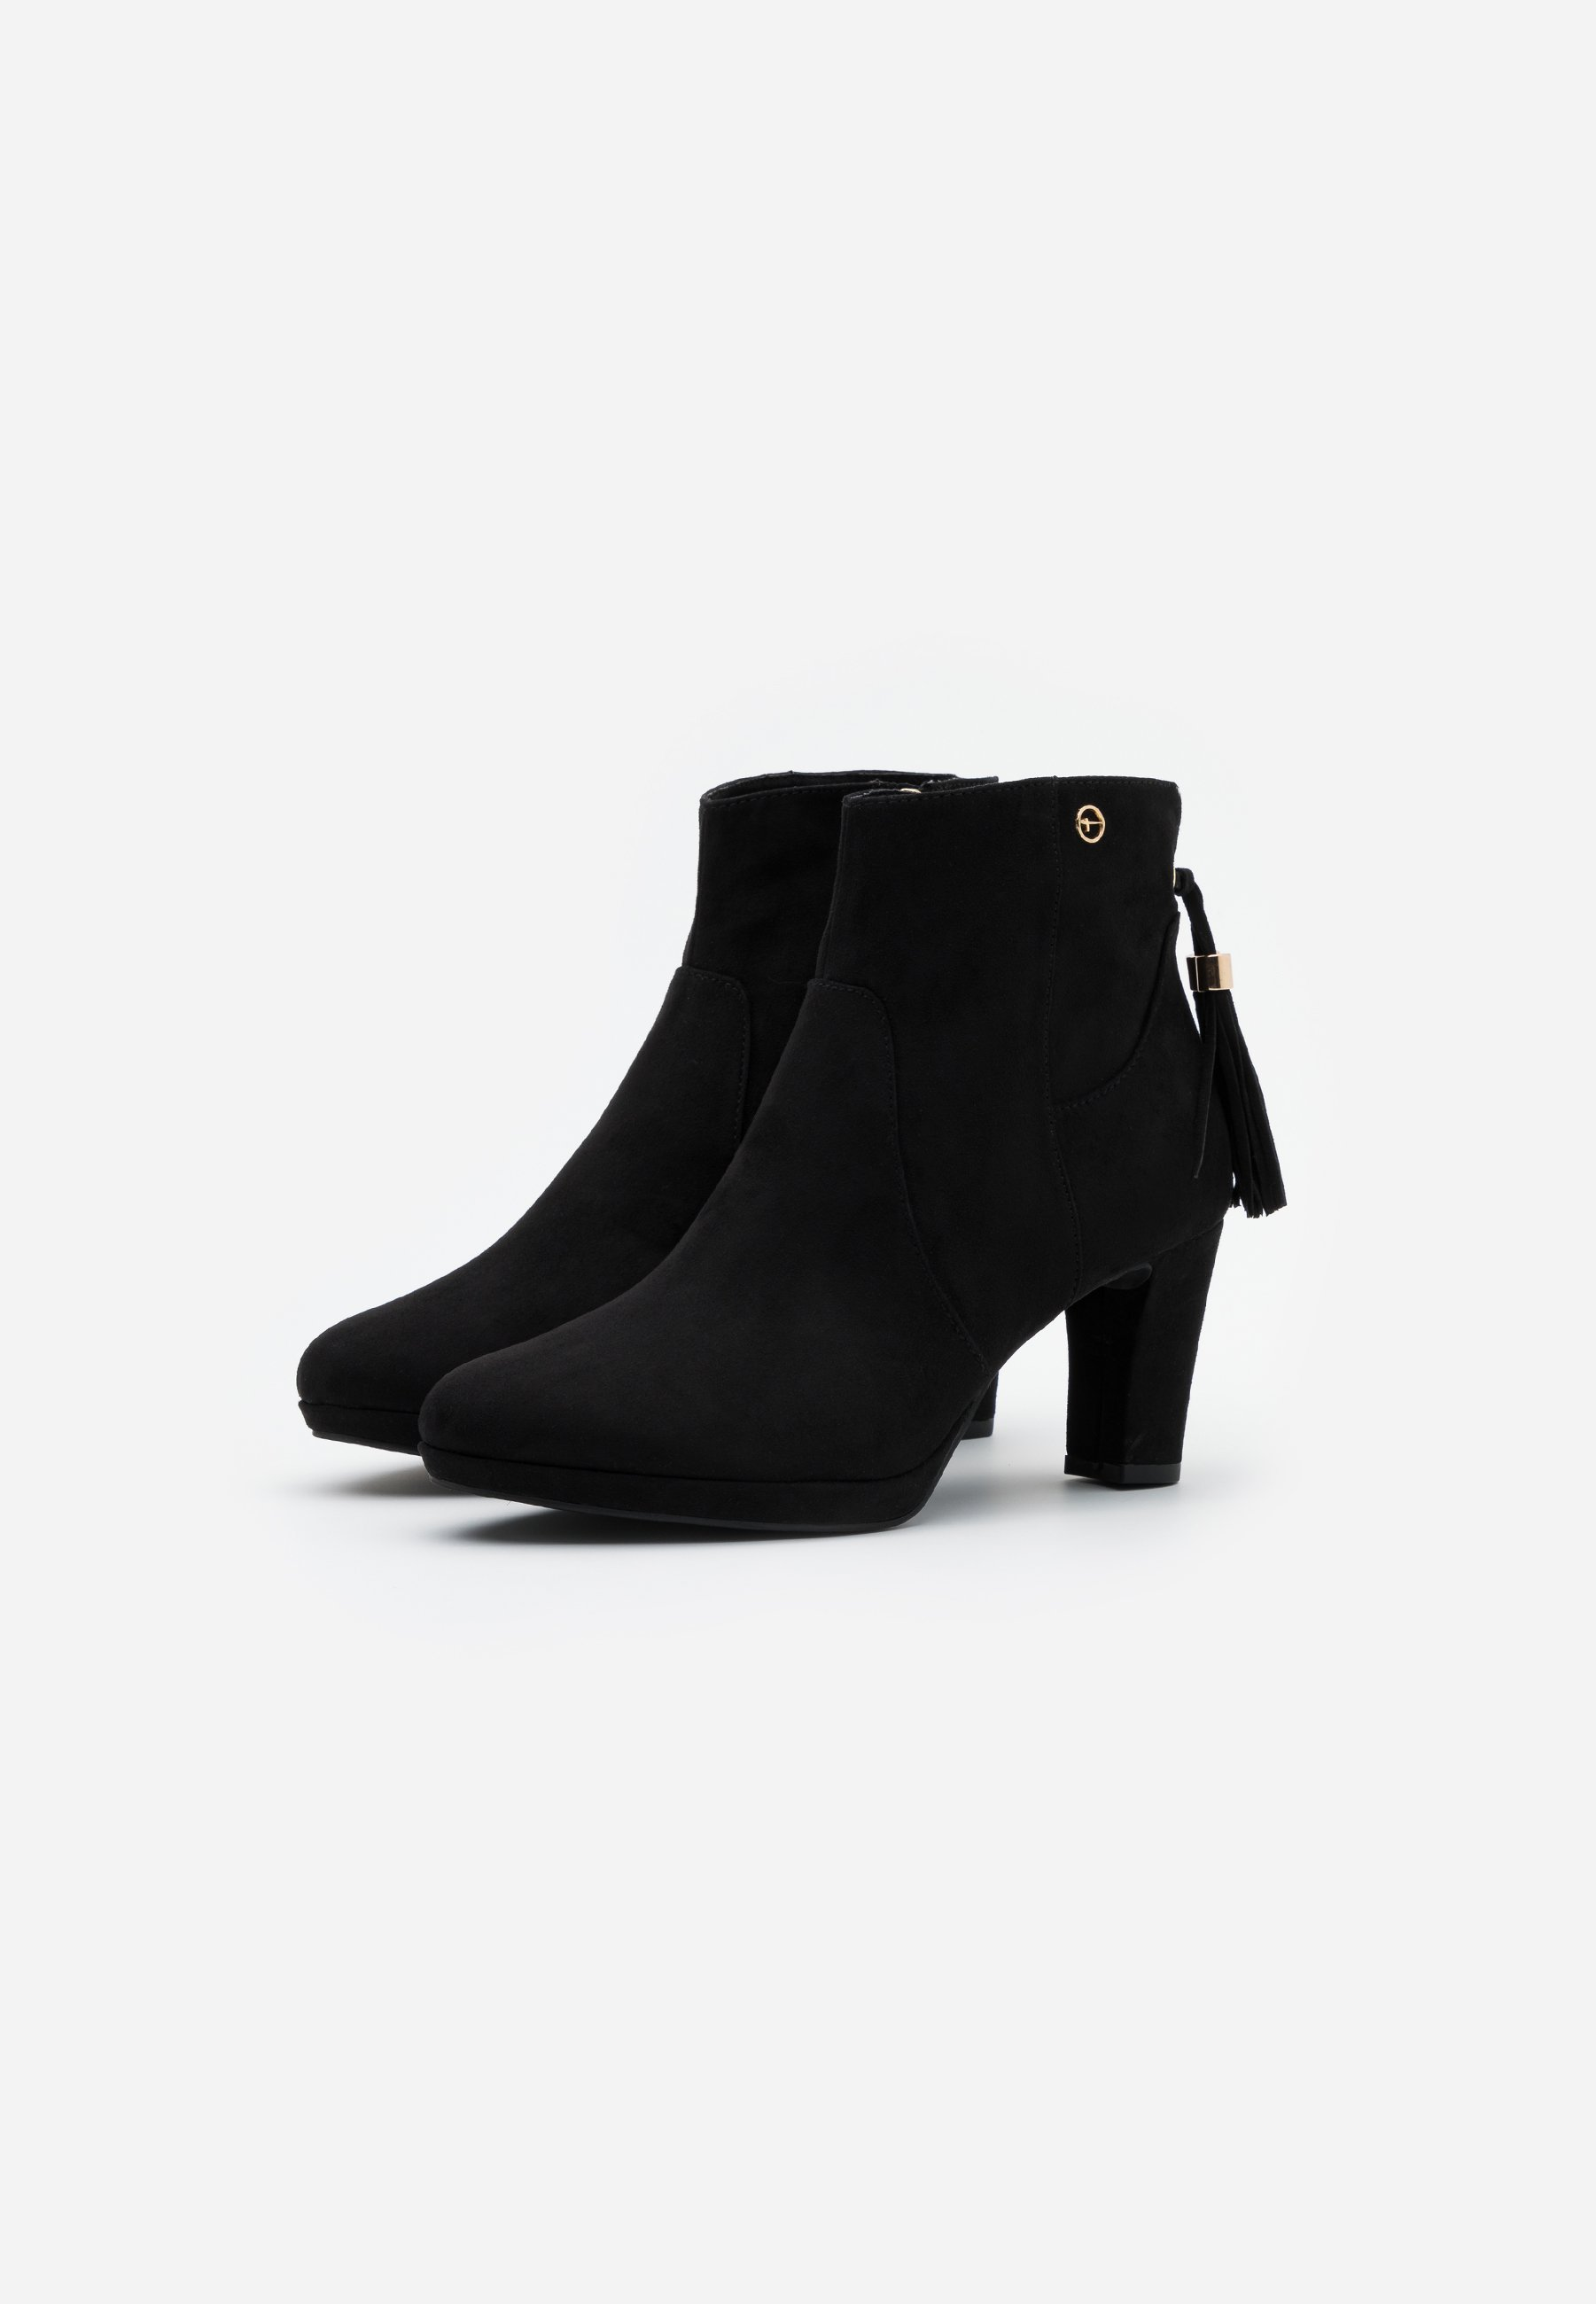 Tamaris Ankle Boot - Black/schwarz